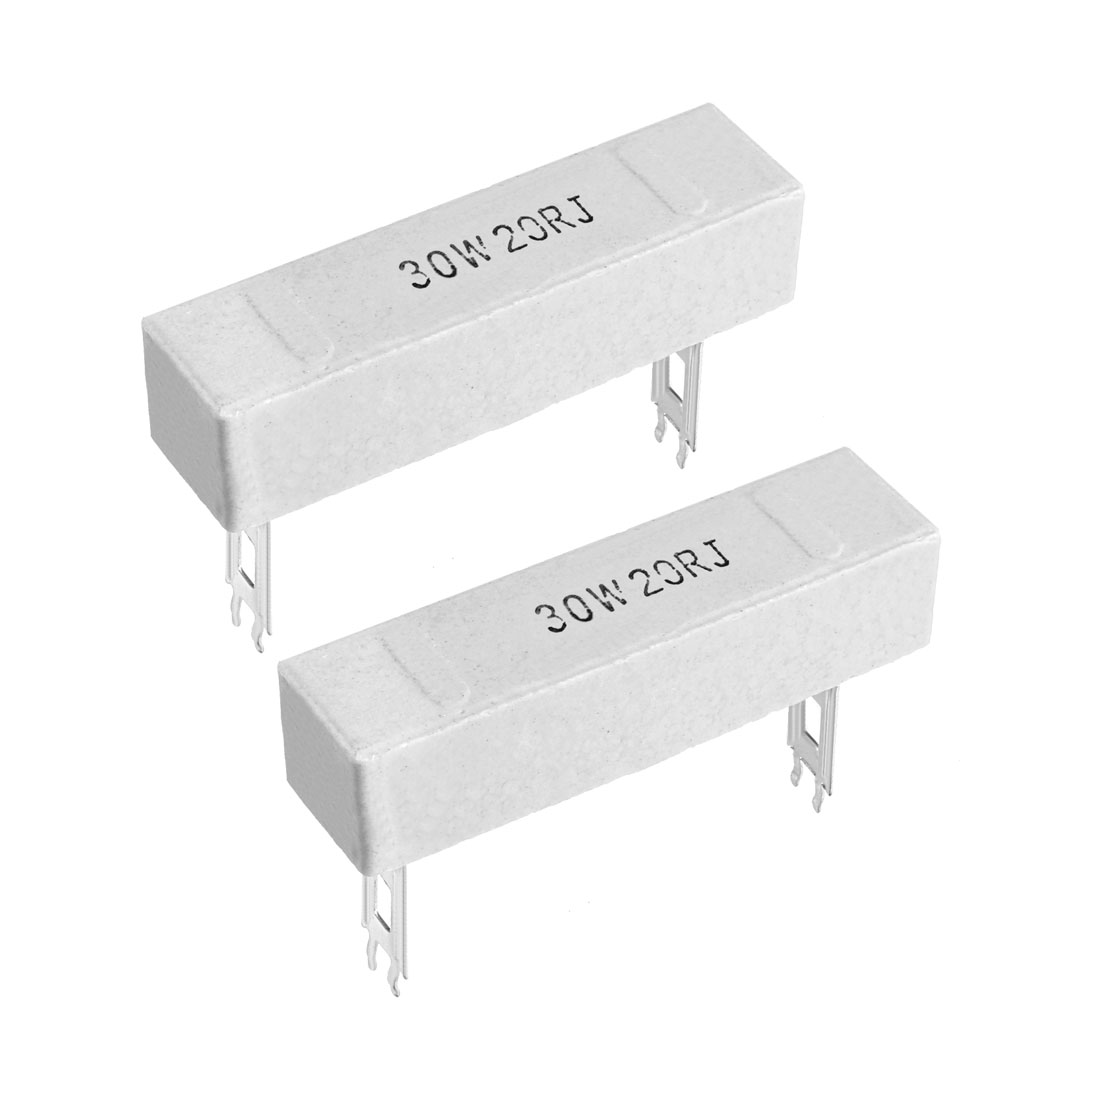 30W 20 Ohm Power Resistor Ceramic Cement Resistor Axial Lead White 2pcs